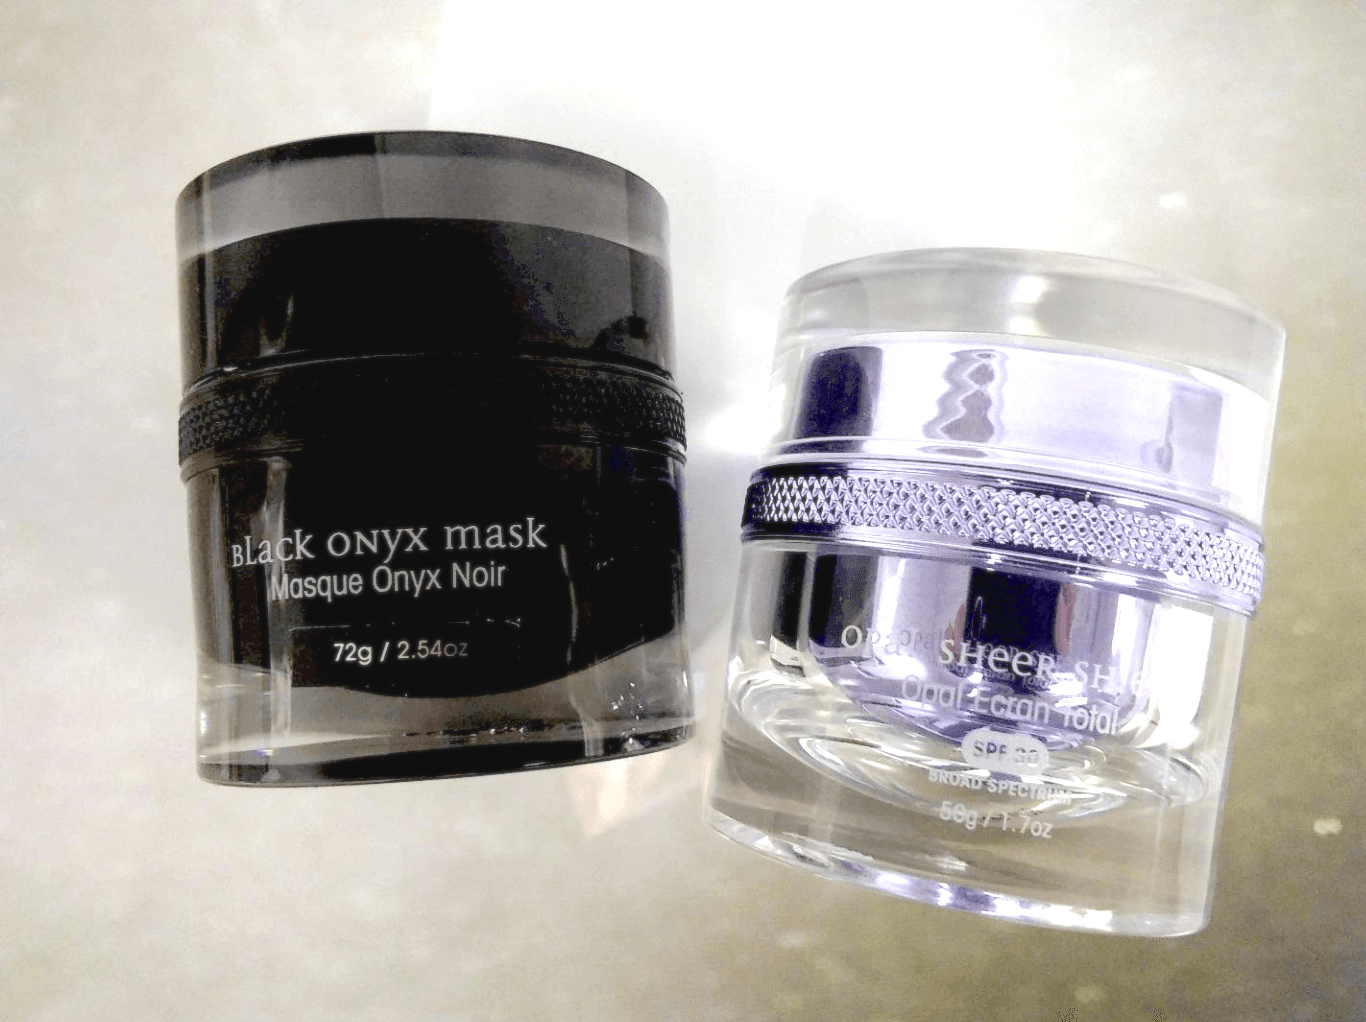 Lionesse Black Onyx Mask and Opal Sheer Shield review